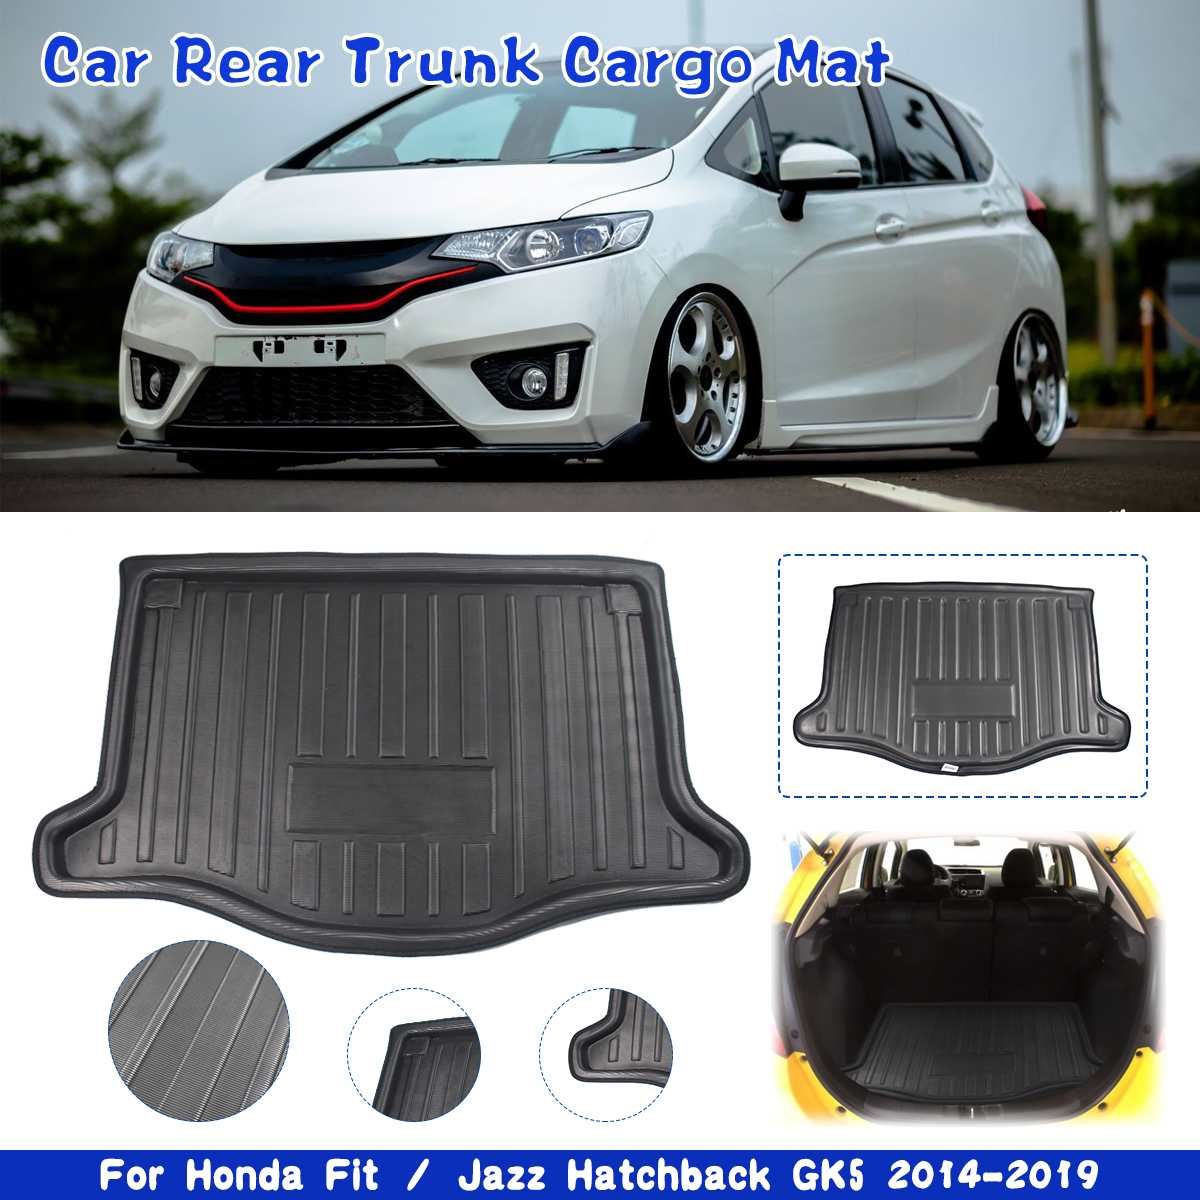 ZYHW Black Auto Cargo Liner Boot Rear Trunk Mat Tray Floor Mat Cover Protector for Honda Fit Jazz 2009-2013